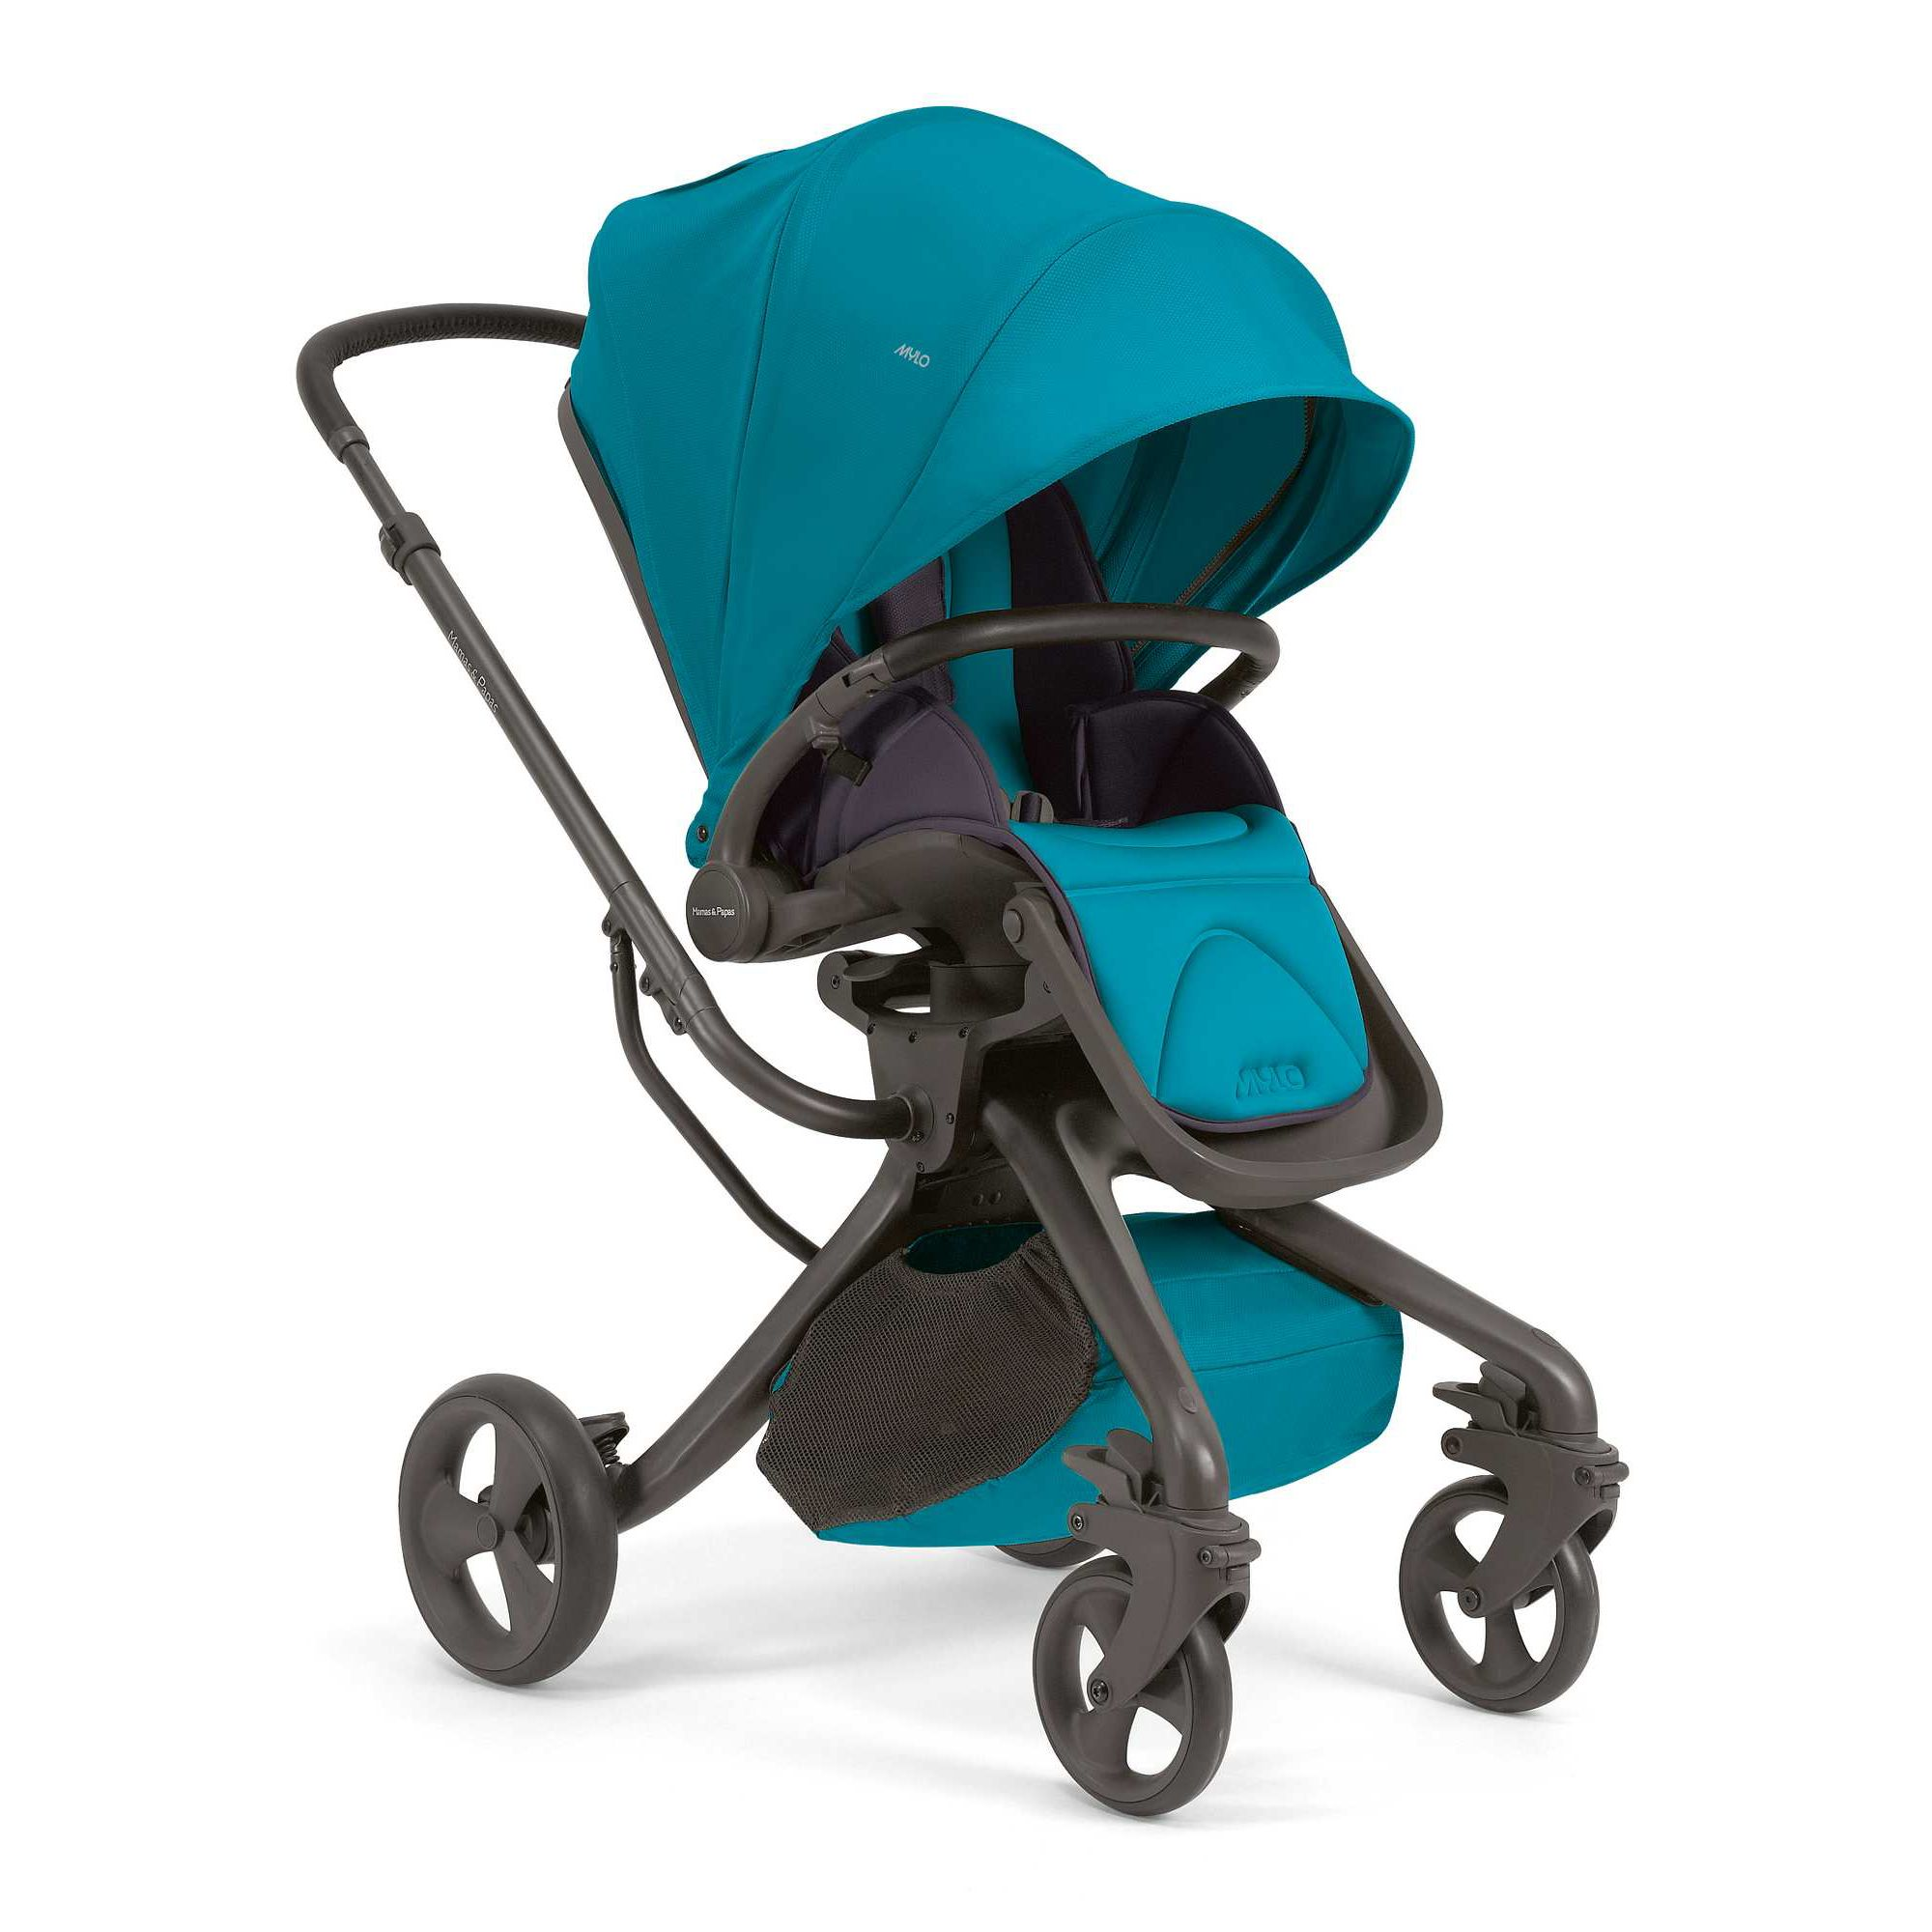 Mamas & Papas - Mylo Pushchair - Turquoise at Tesco Direct